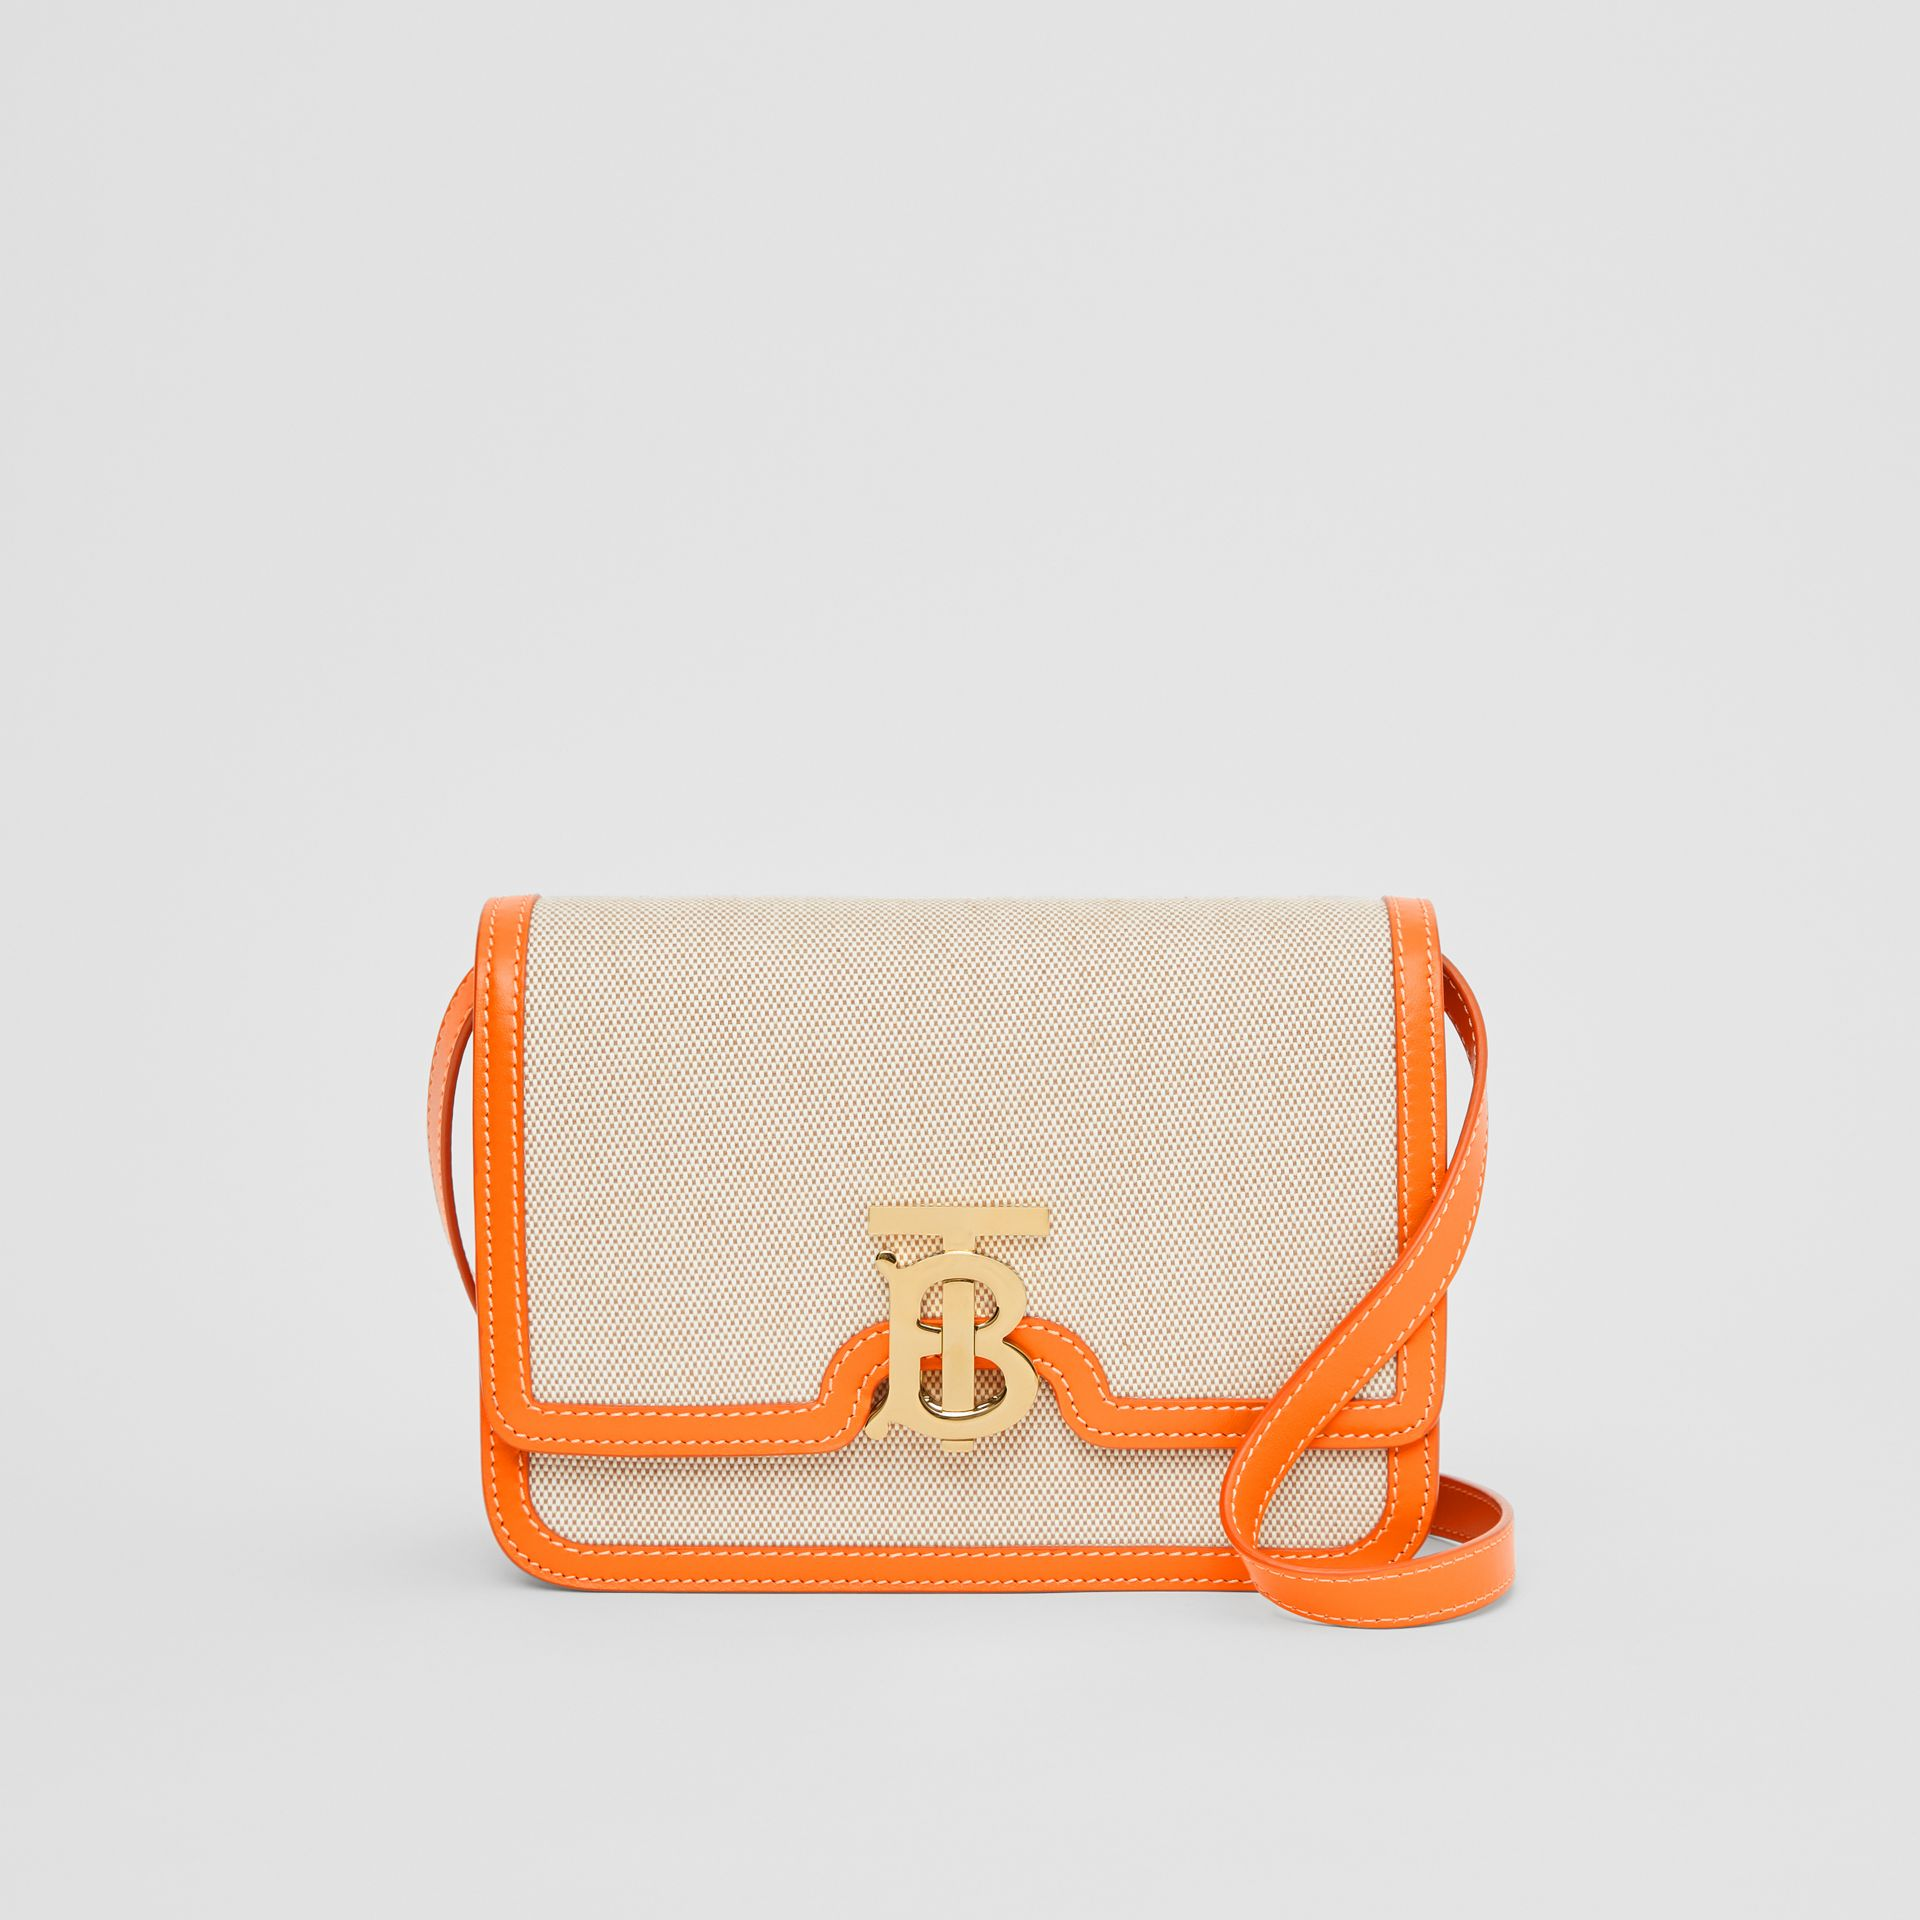 Small Two-tone Canvas and Leather TB Bag in Orange - Women | Burberry - gallery image 0